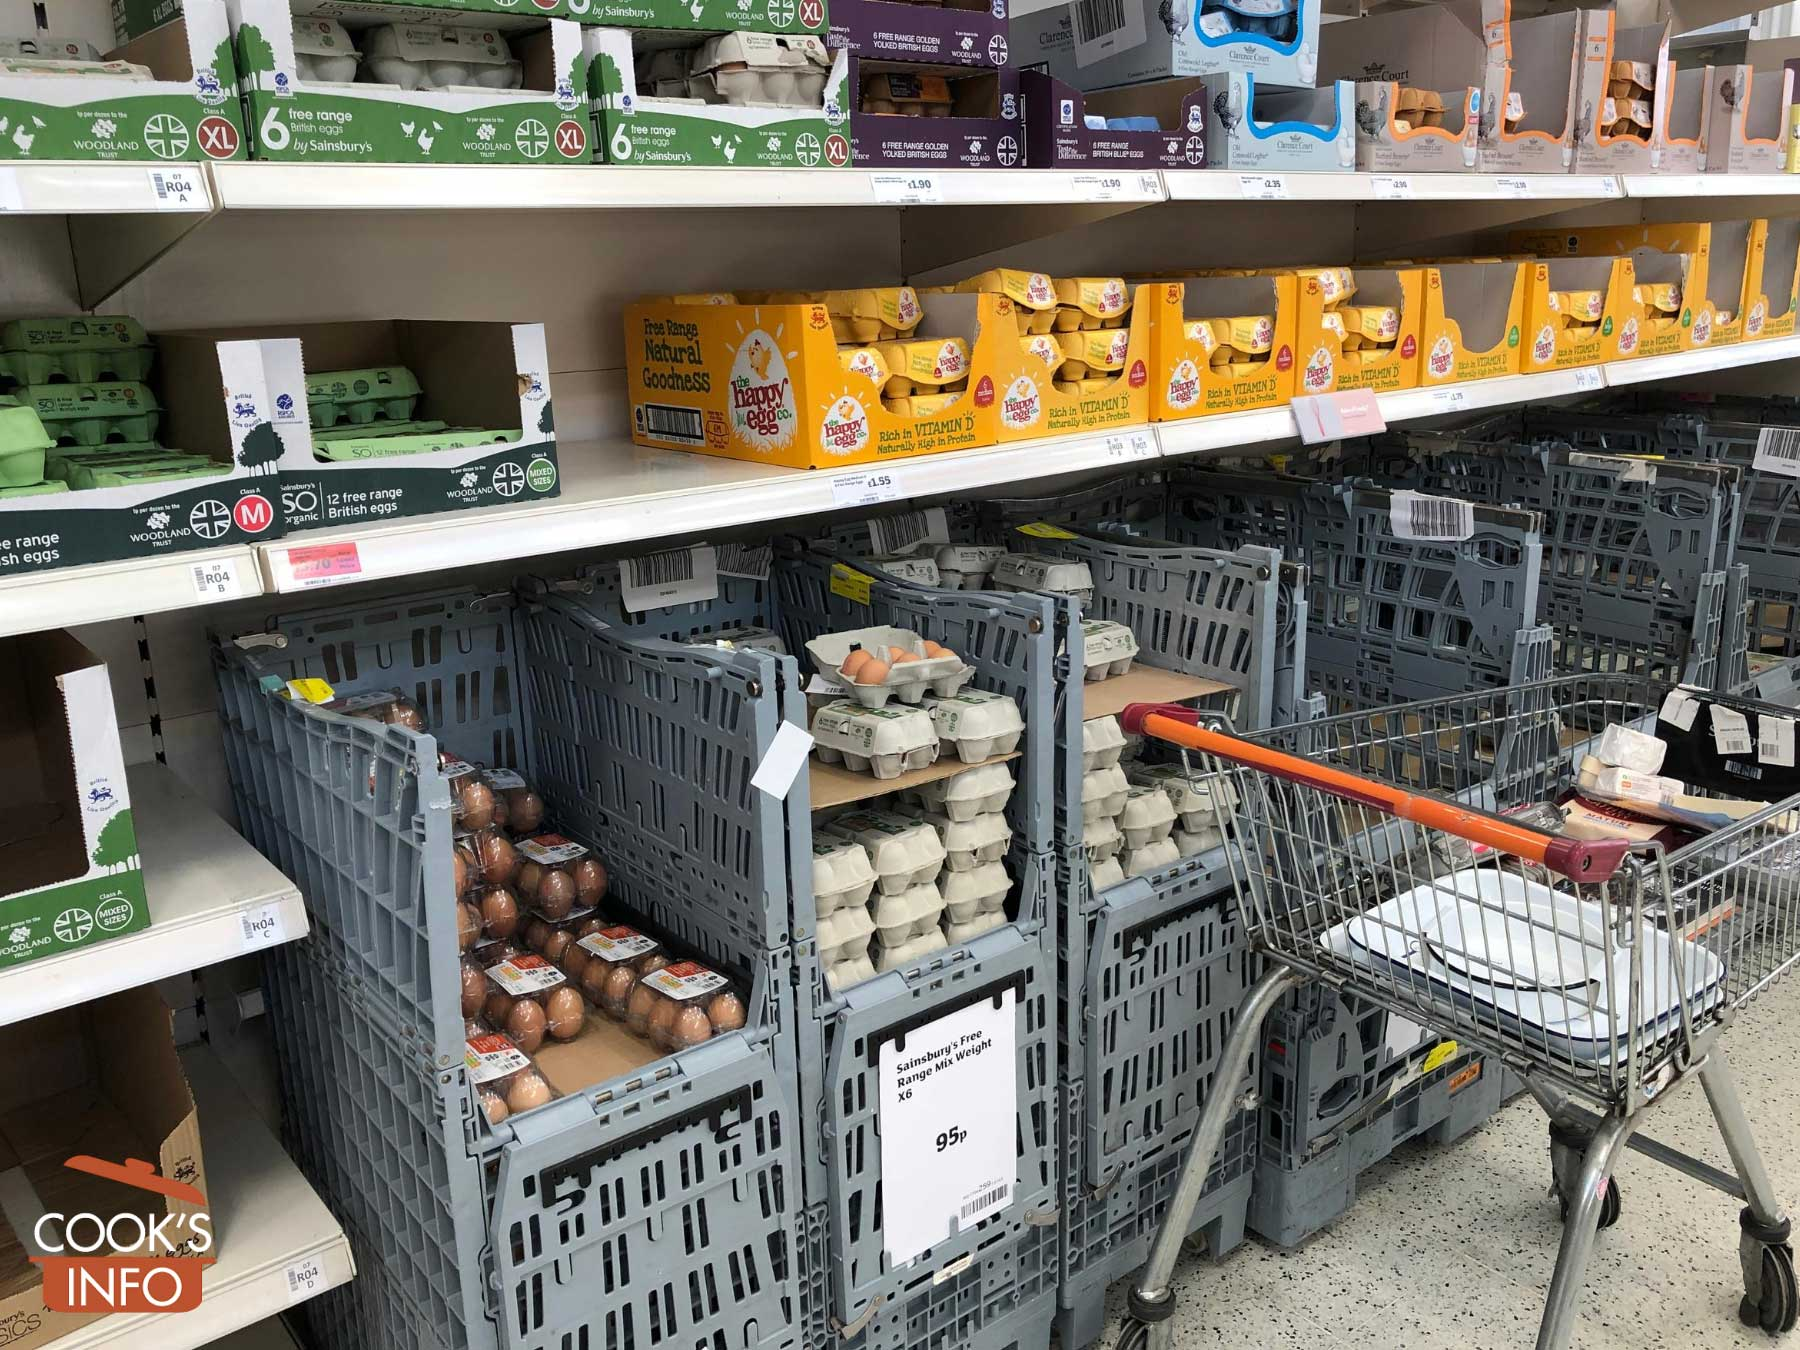 Unrefrigerated eggs in supermarket aisle